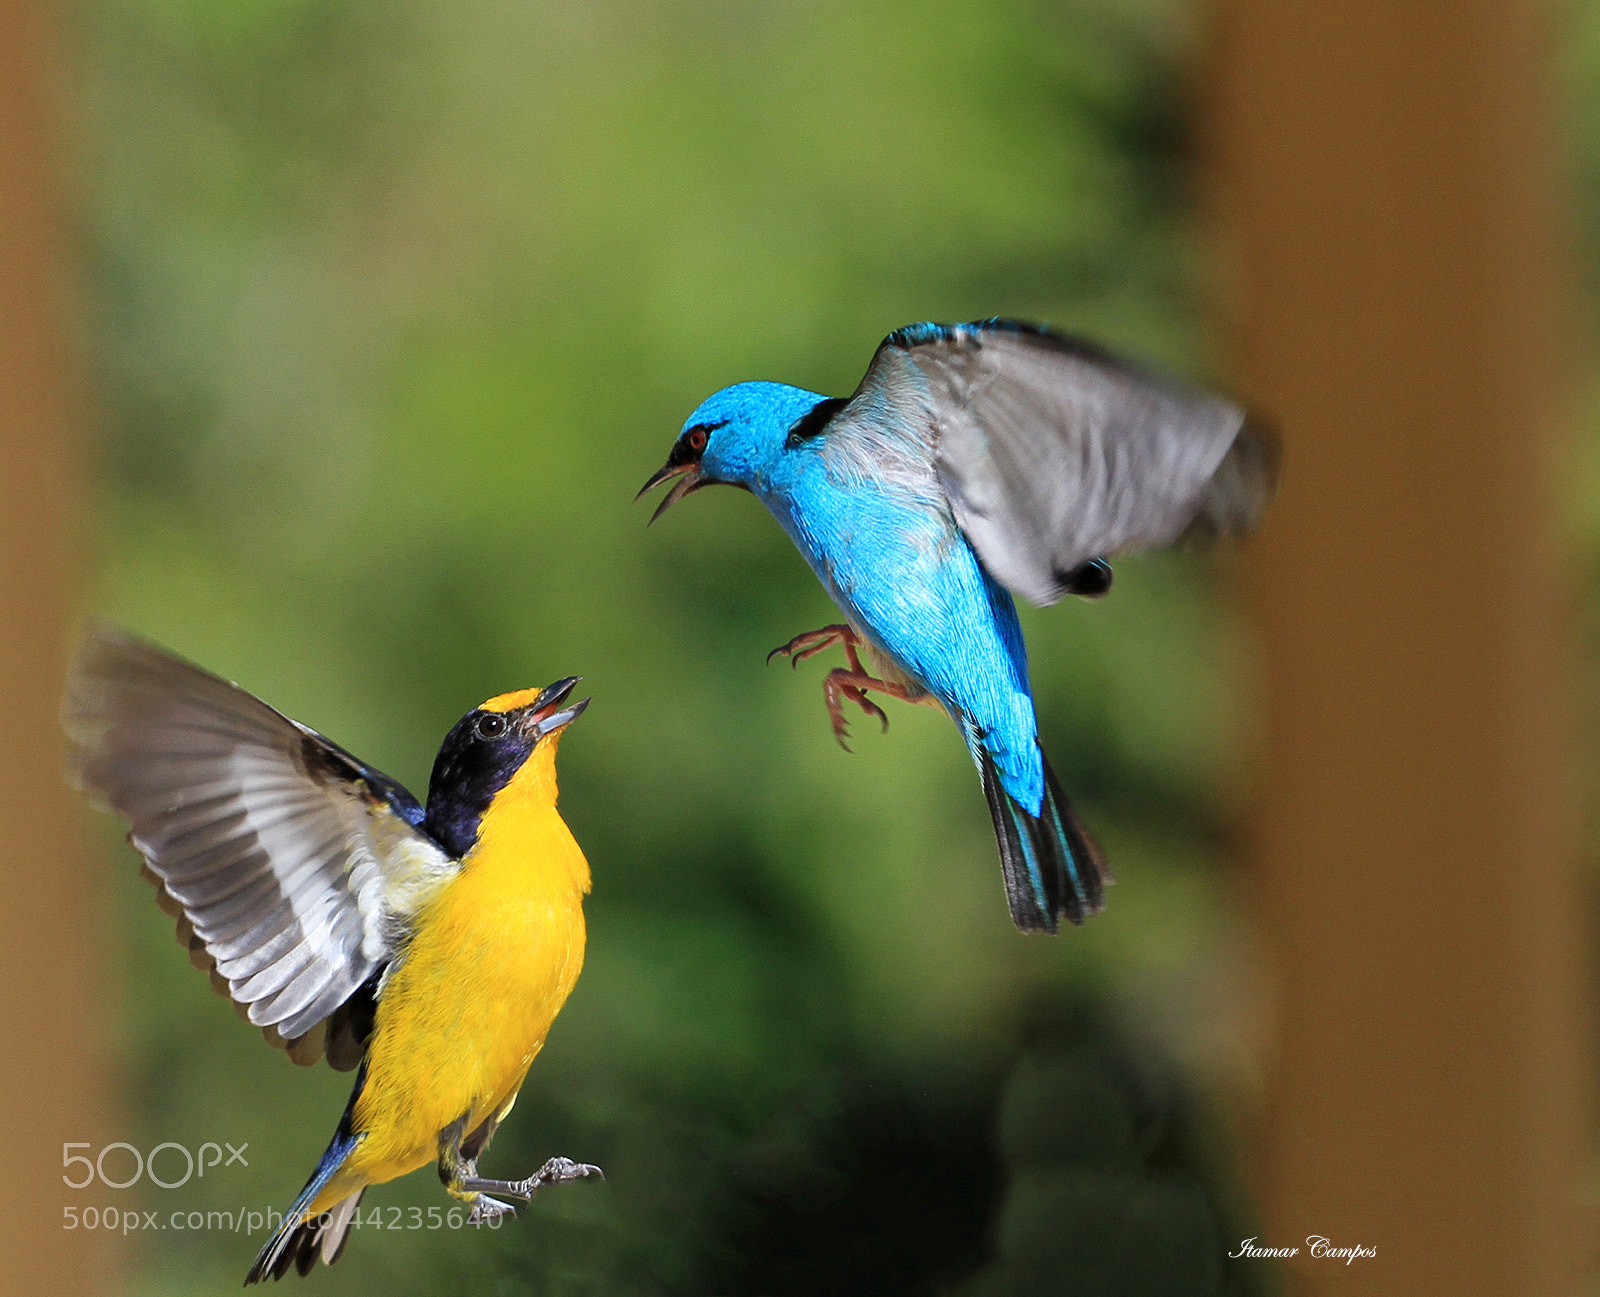 Photograph Yellow and blue! by Itamar Campos on 500px